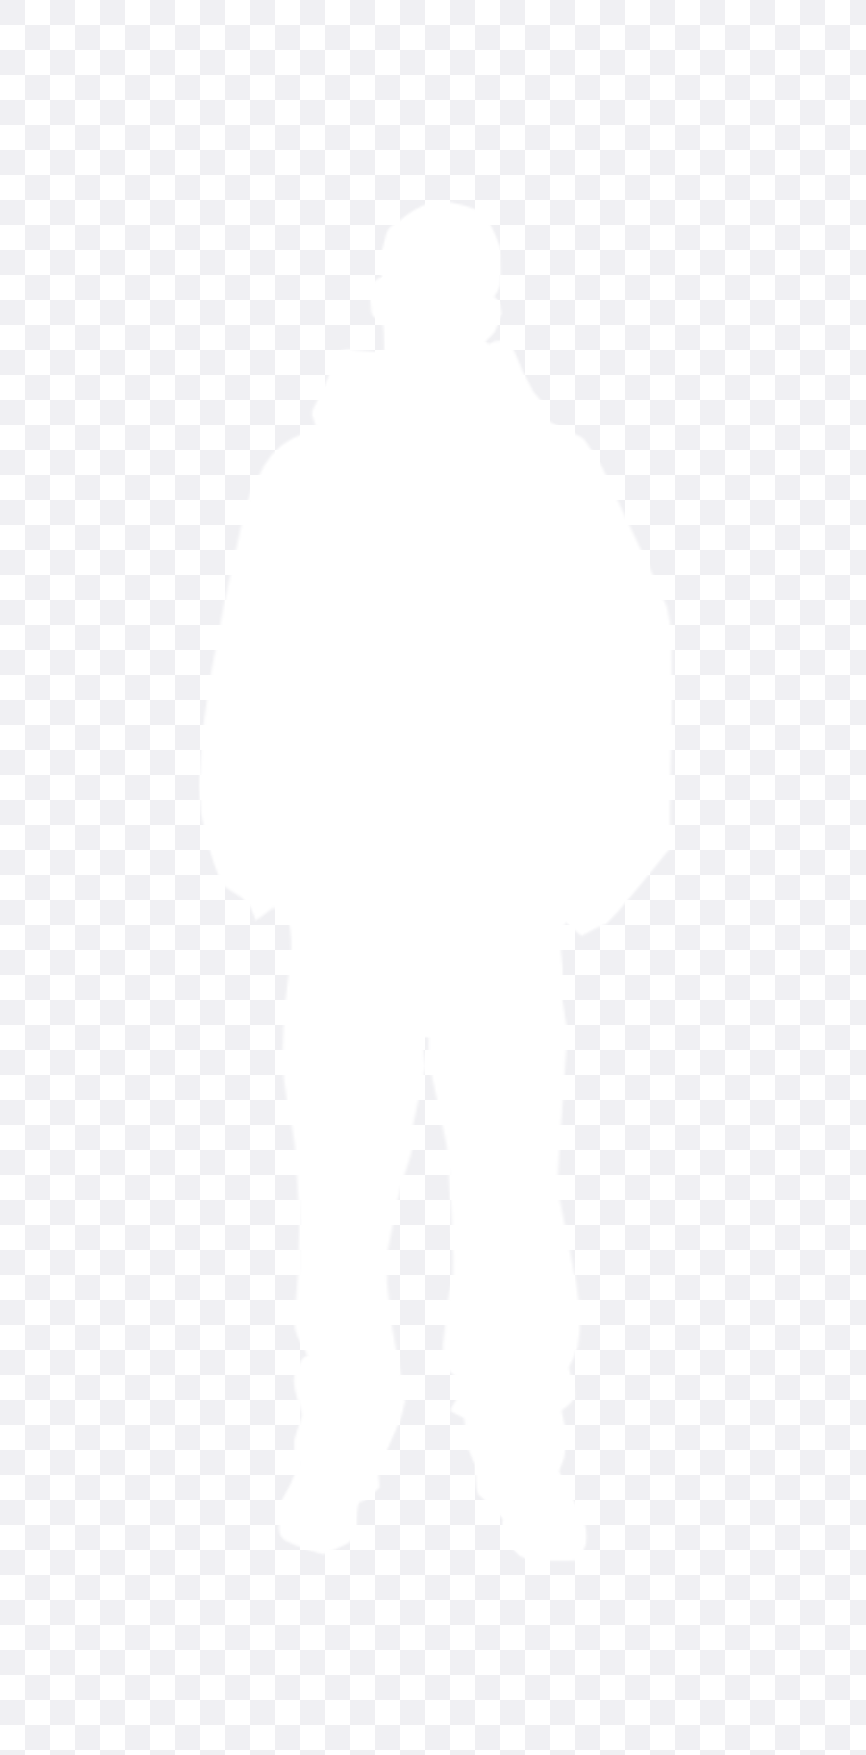 person outline